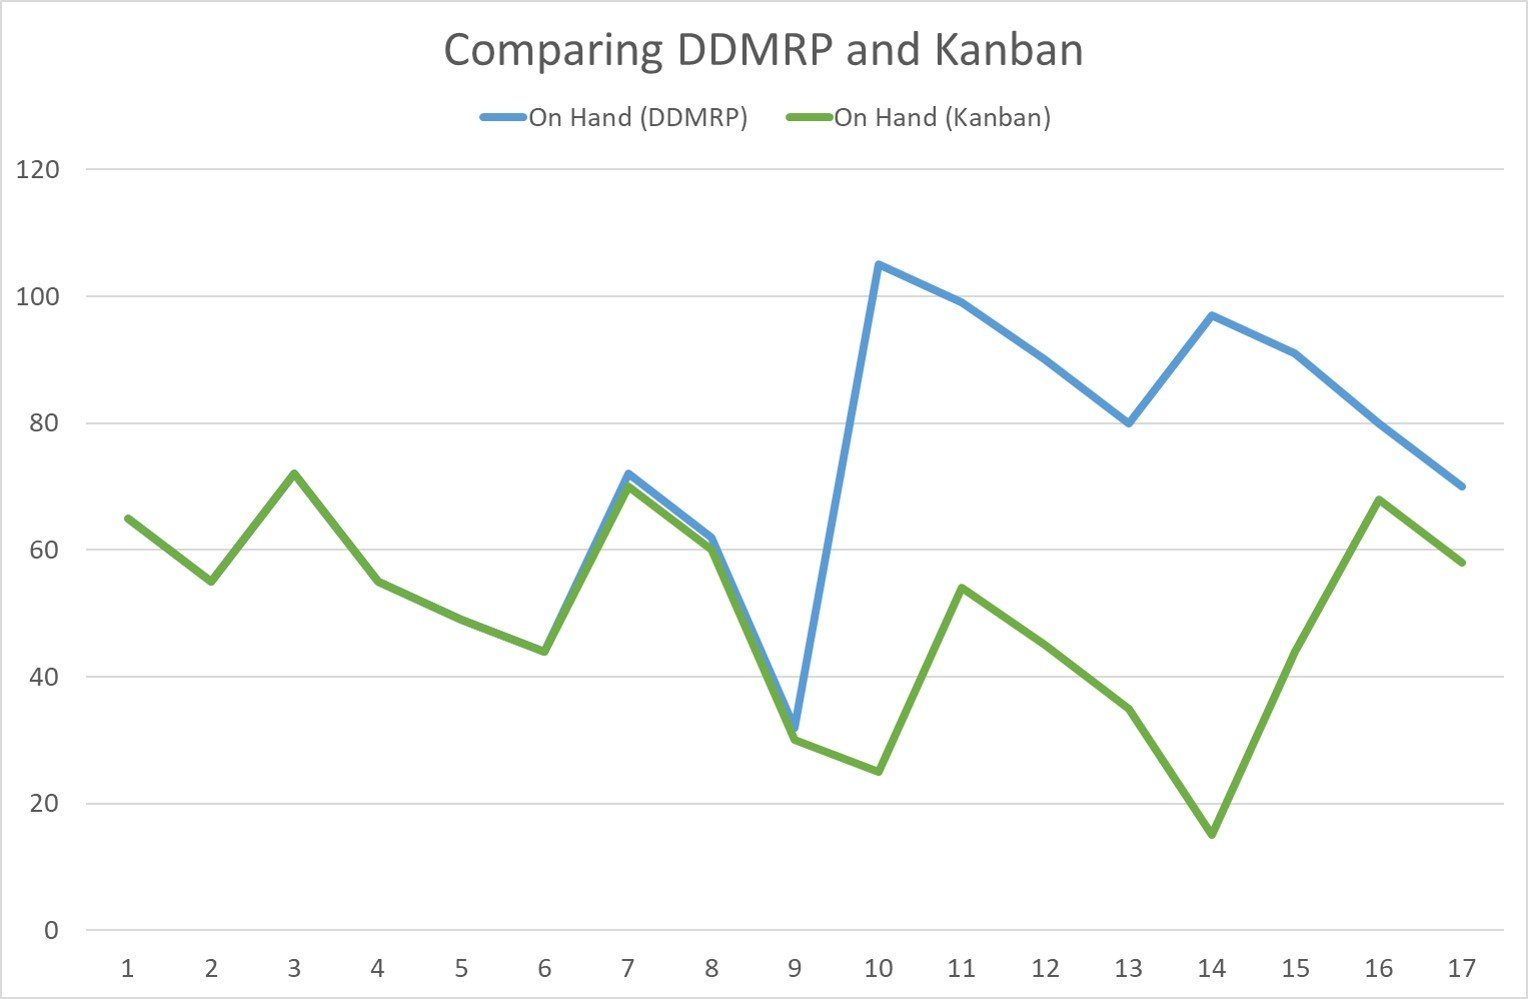 DDMRP and Kanban Simulation: On Hand Inventory